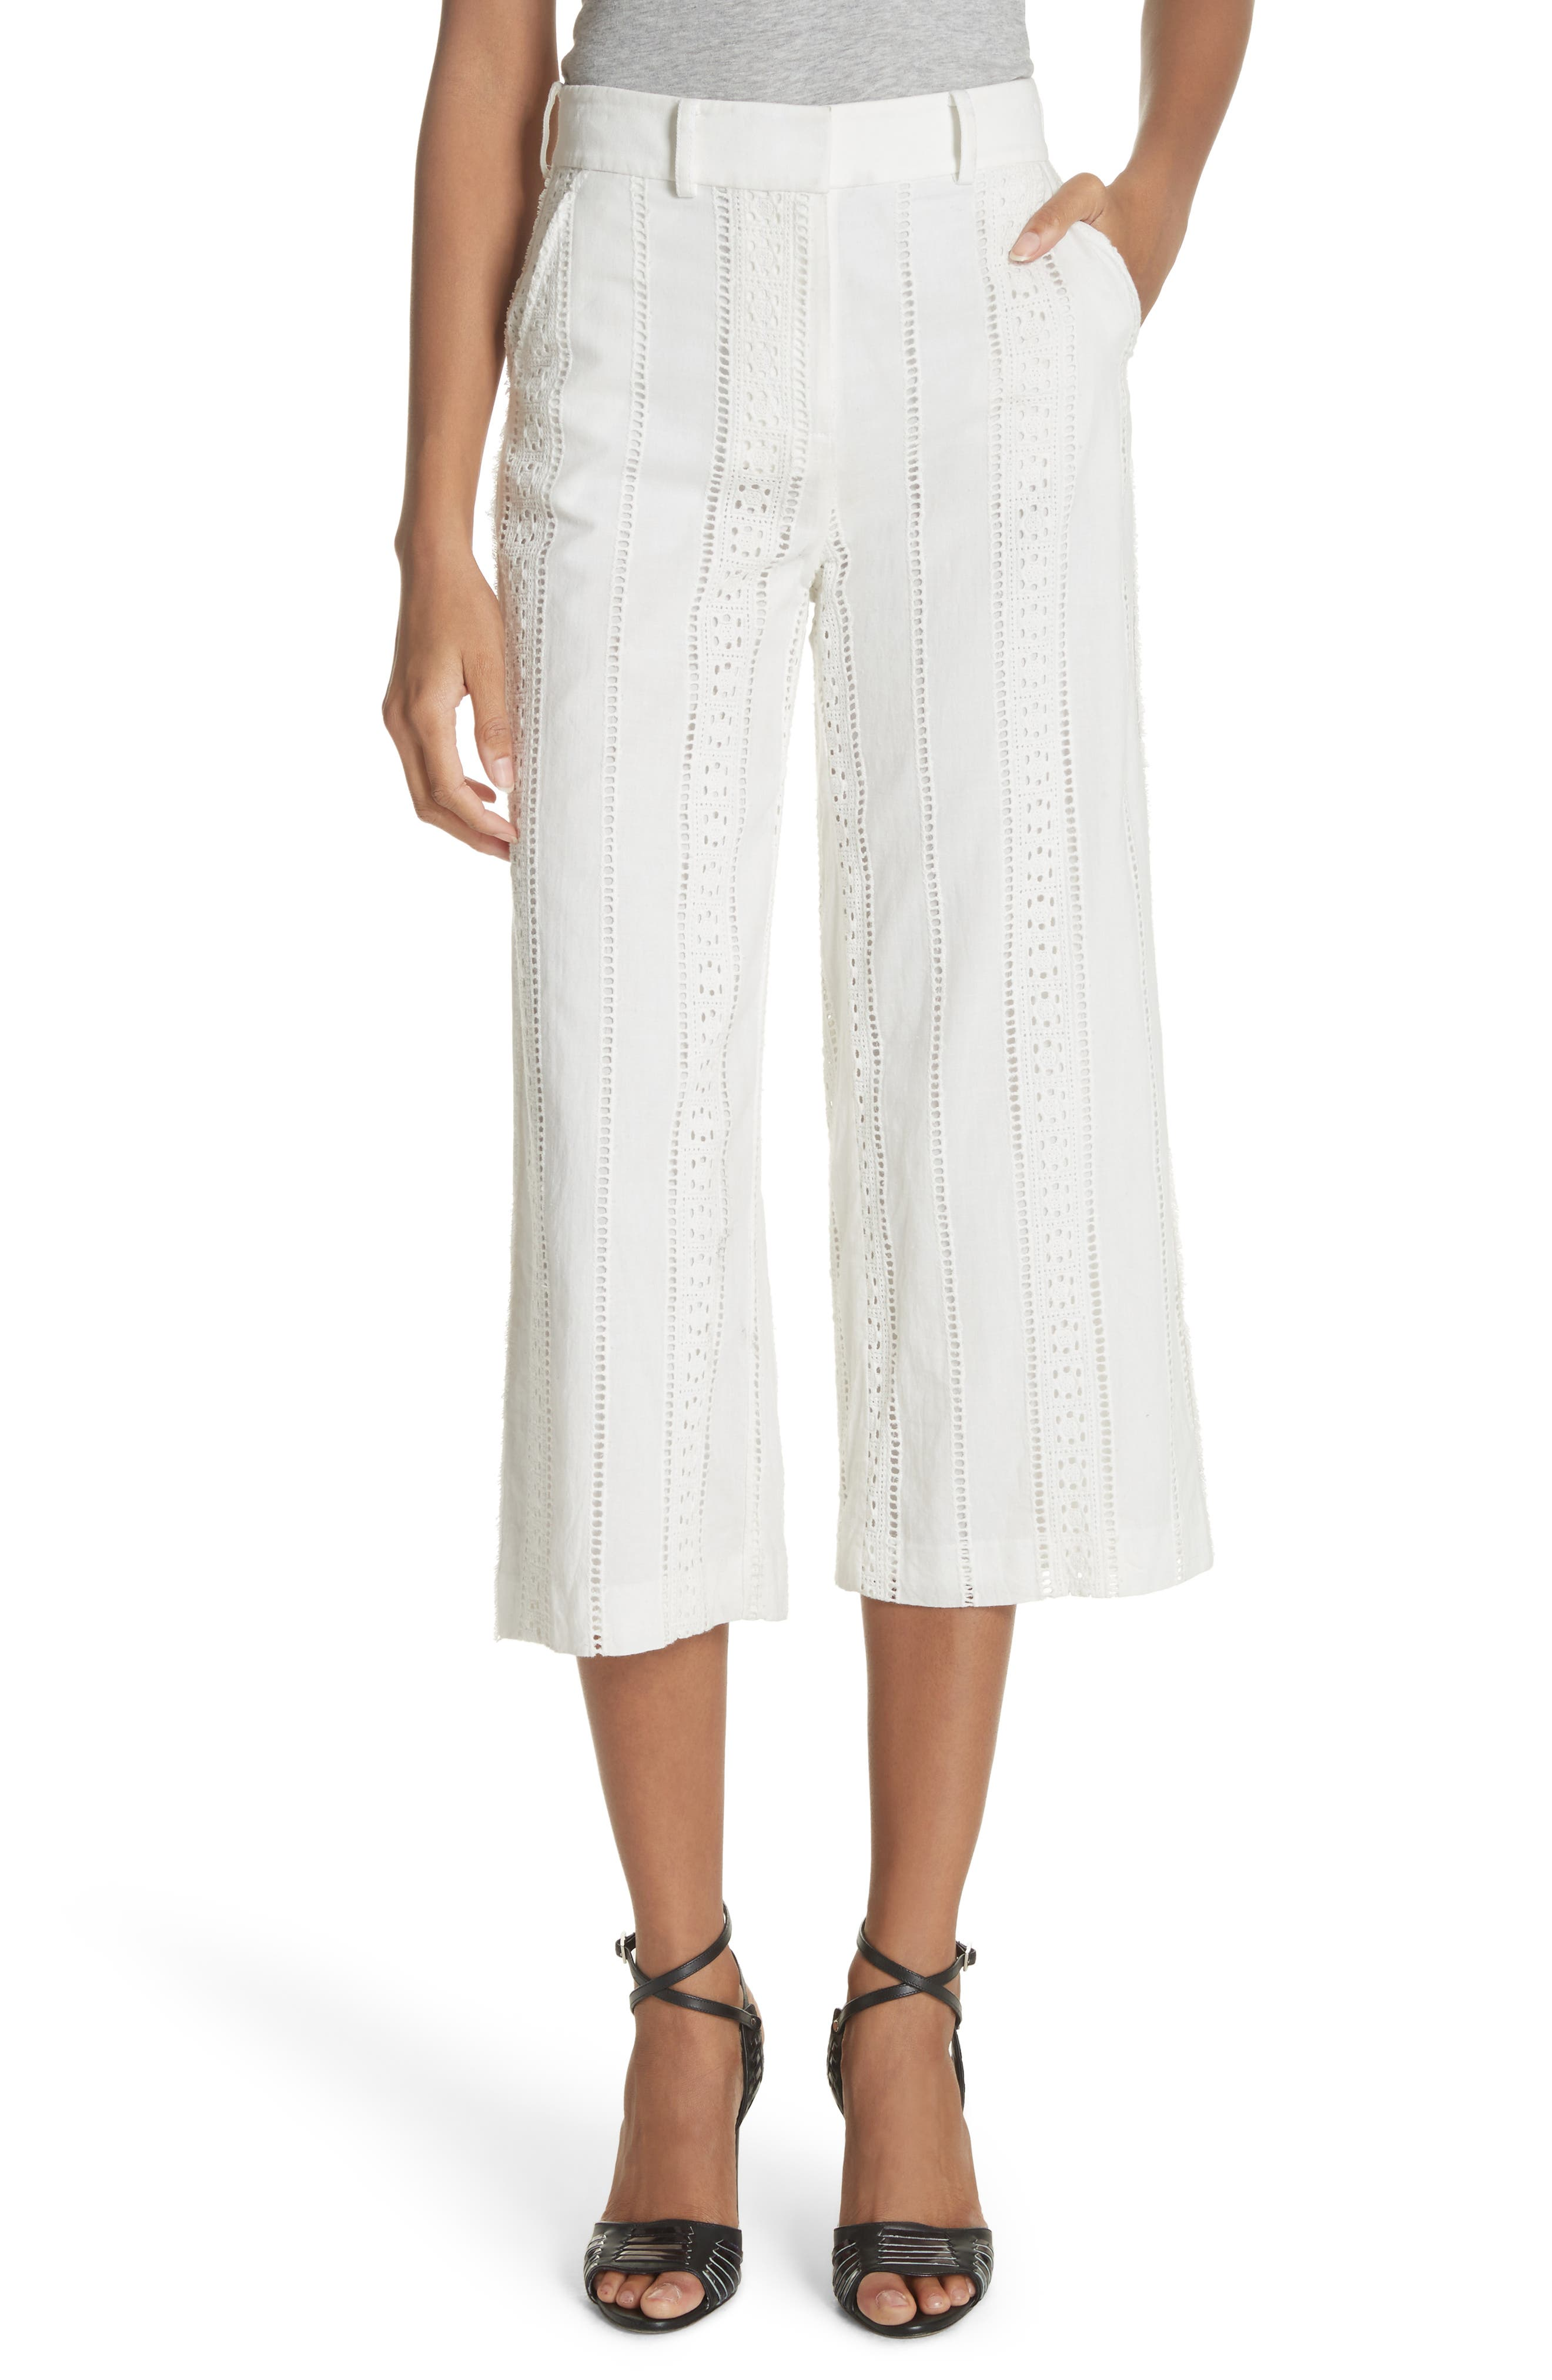 Leta Eyelet Gaucho Pants,                             Main thumbnail 1, color,                             White